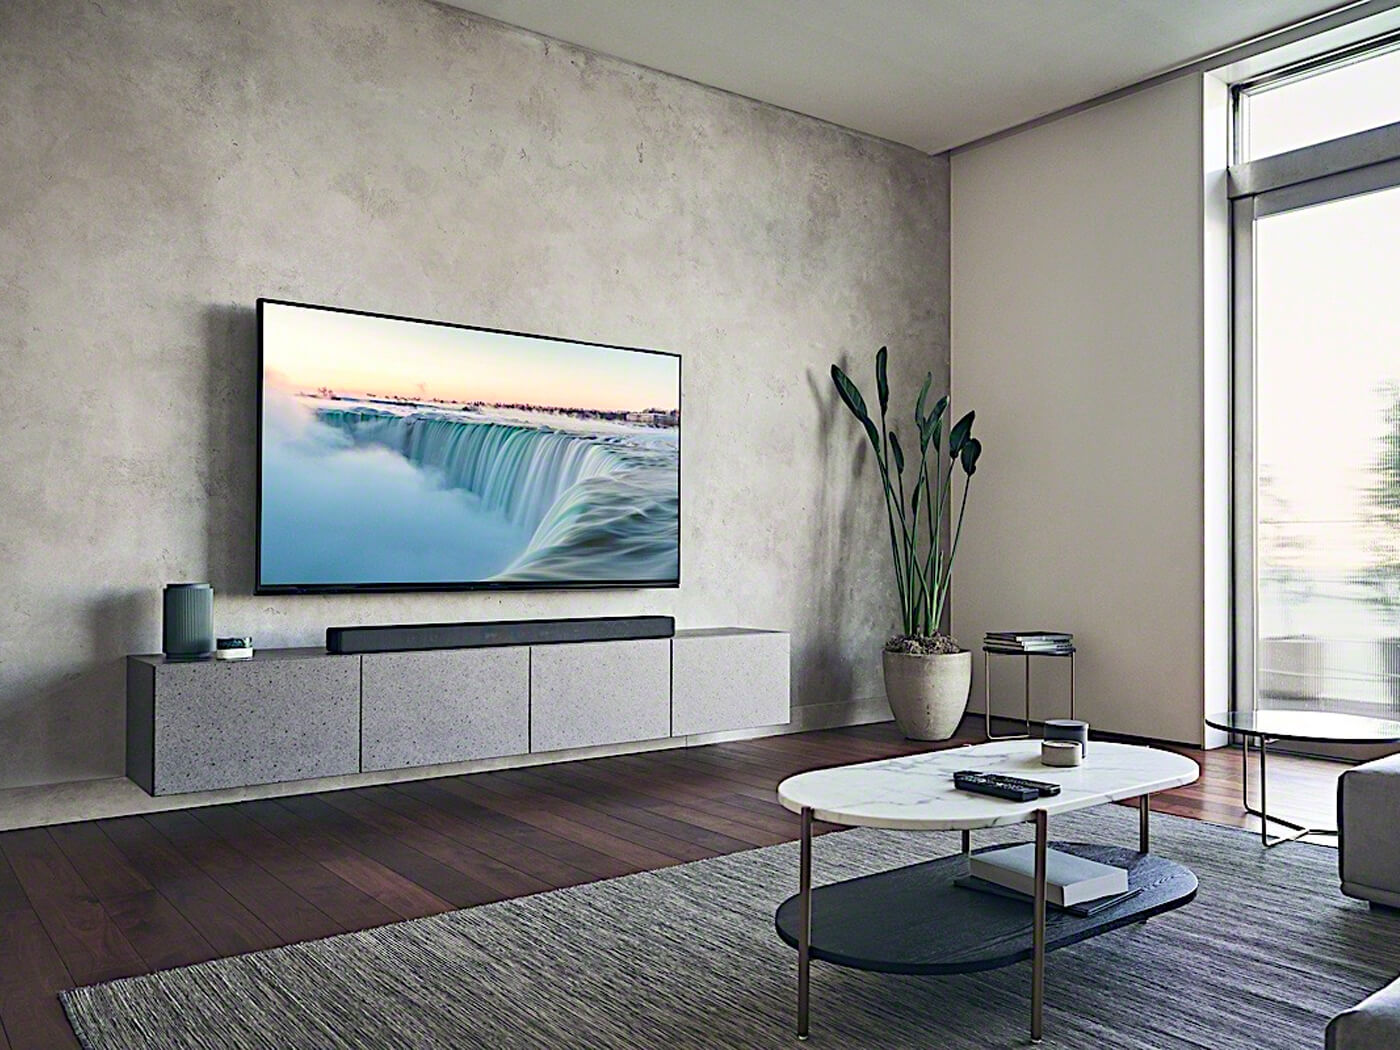 Sony's flagship HT-A7000 soundbar comes ready for Dolby Atmos and 360 Reality Audio